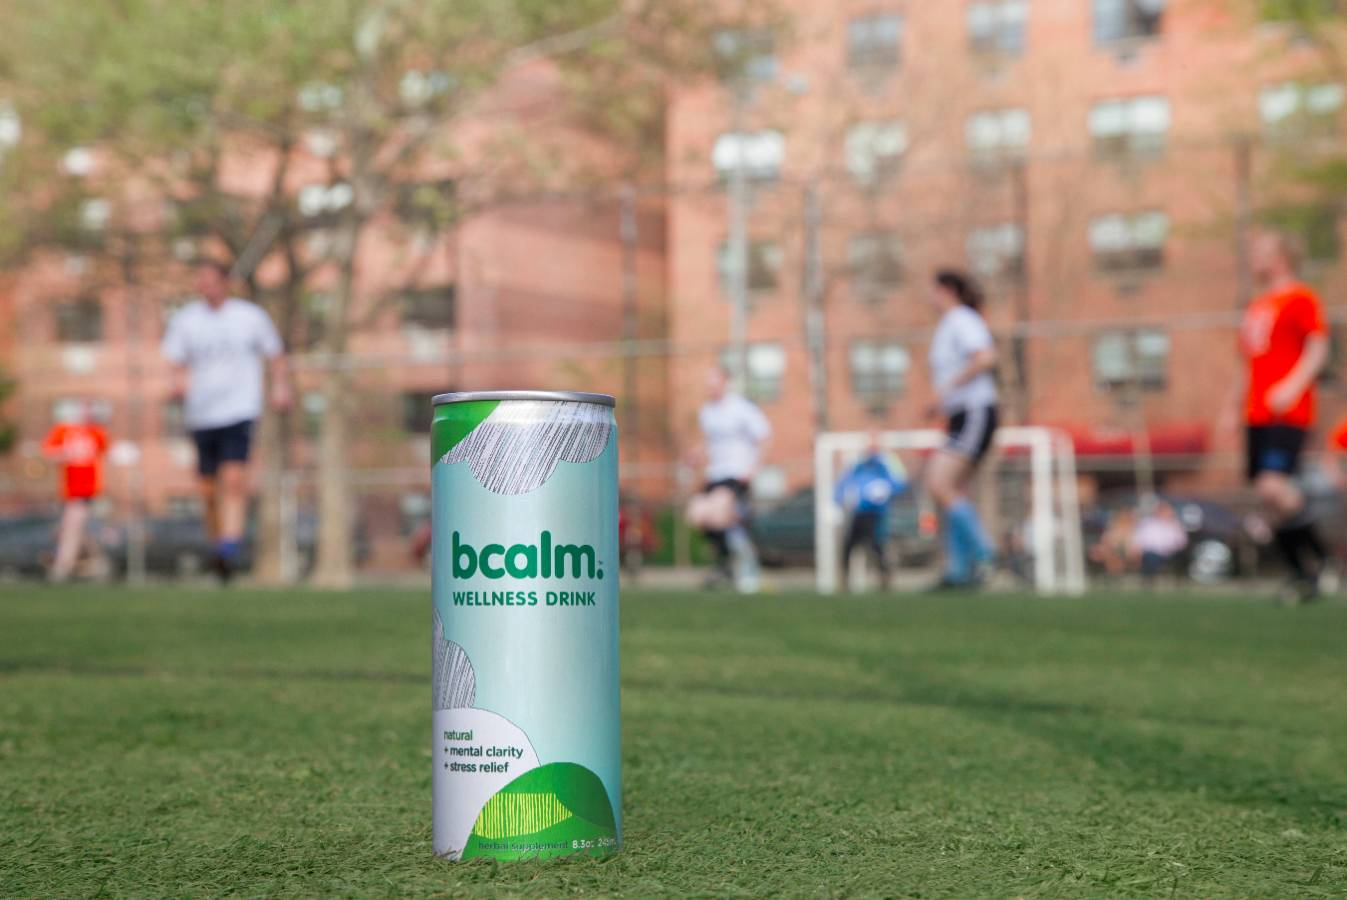 HBS graduate launches bcalm, a drink to help us carry on in our hectic, always connected lives